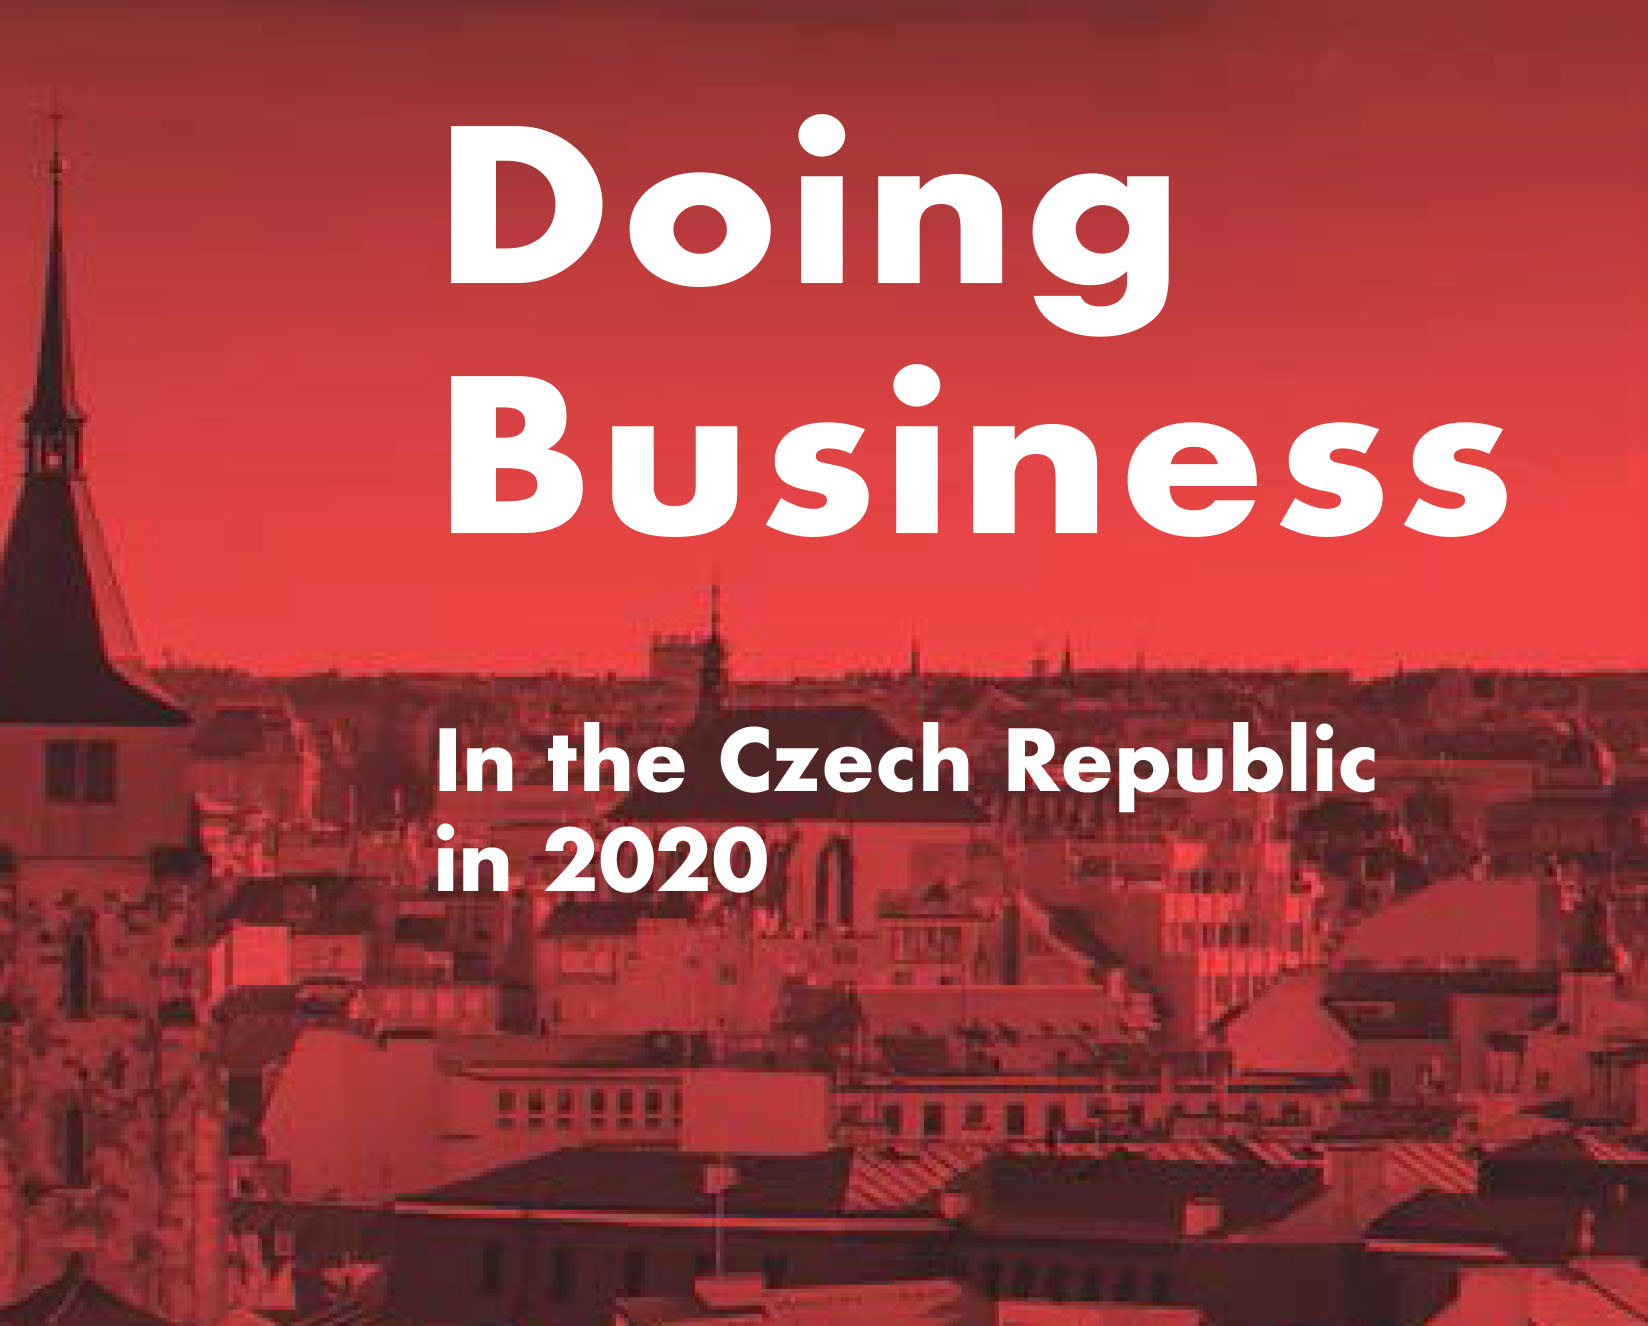 Czech Republic Doing Business 2020